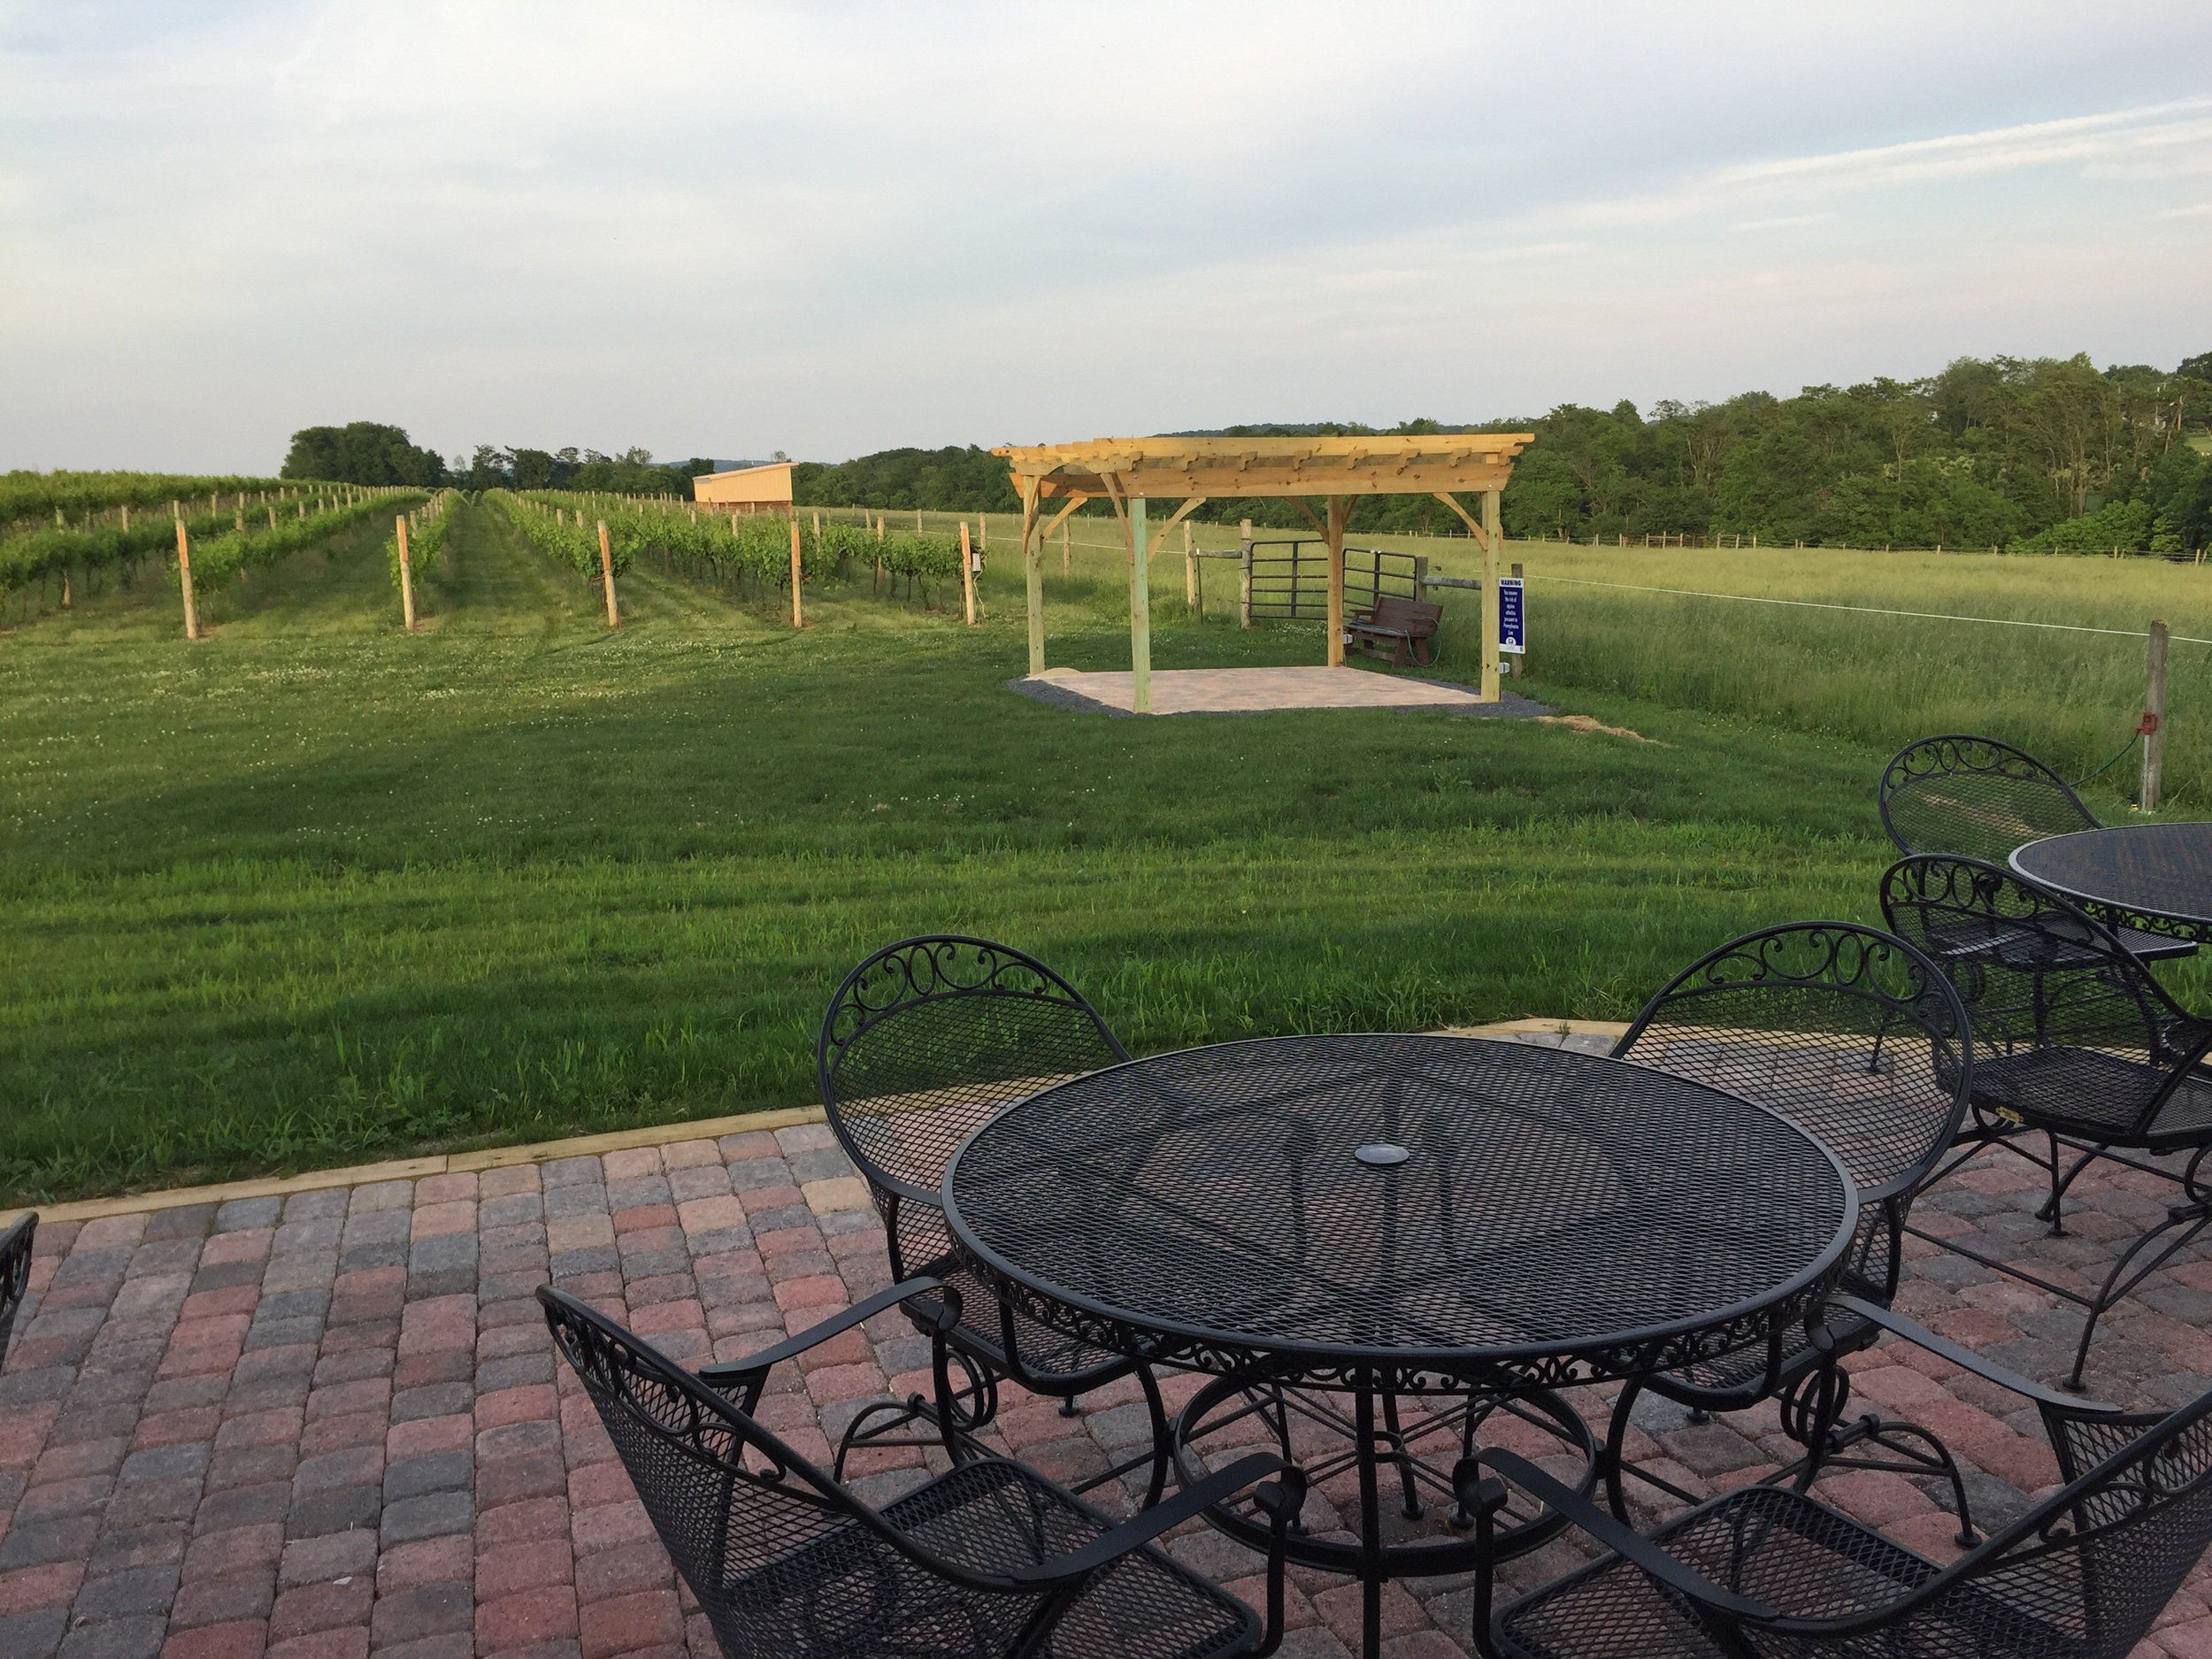 The view from our back patio overlooking our vineyards.